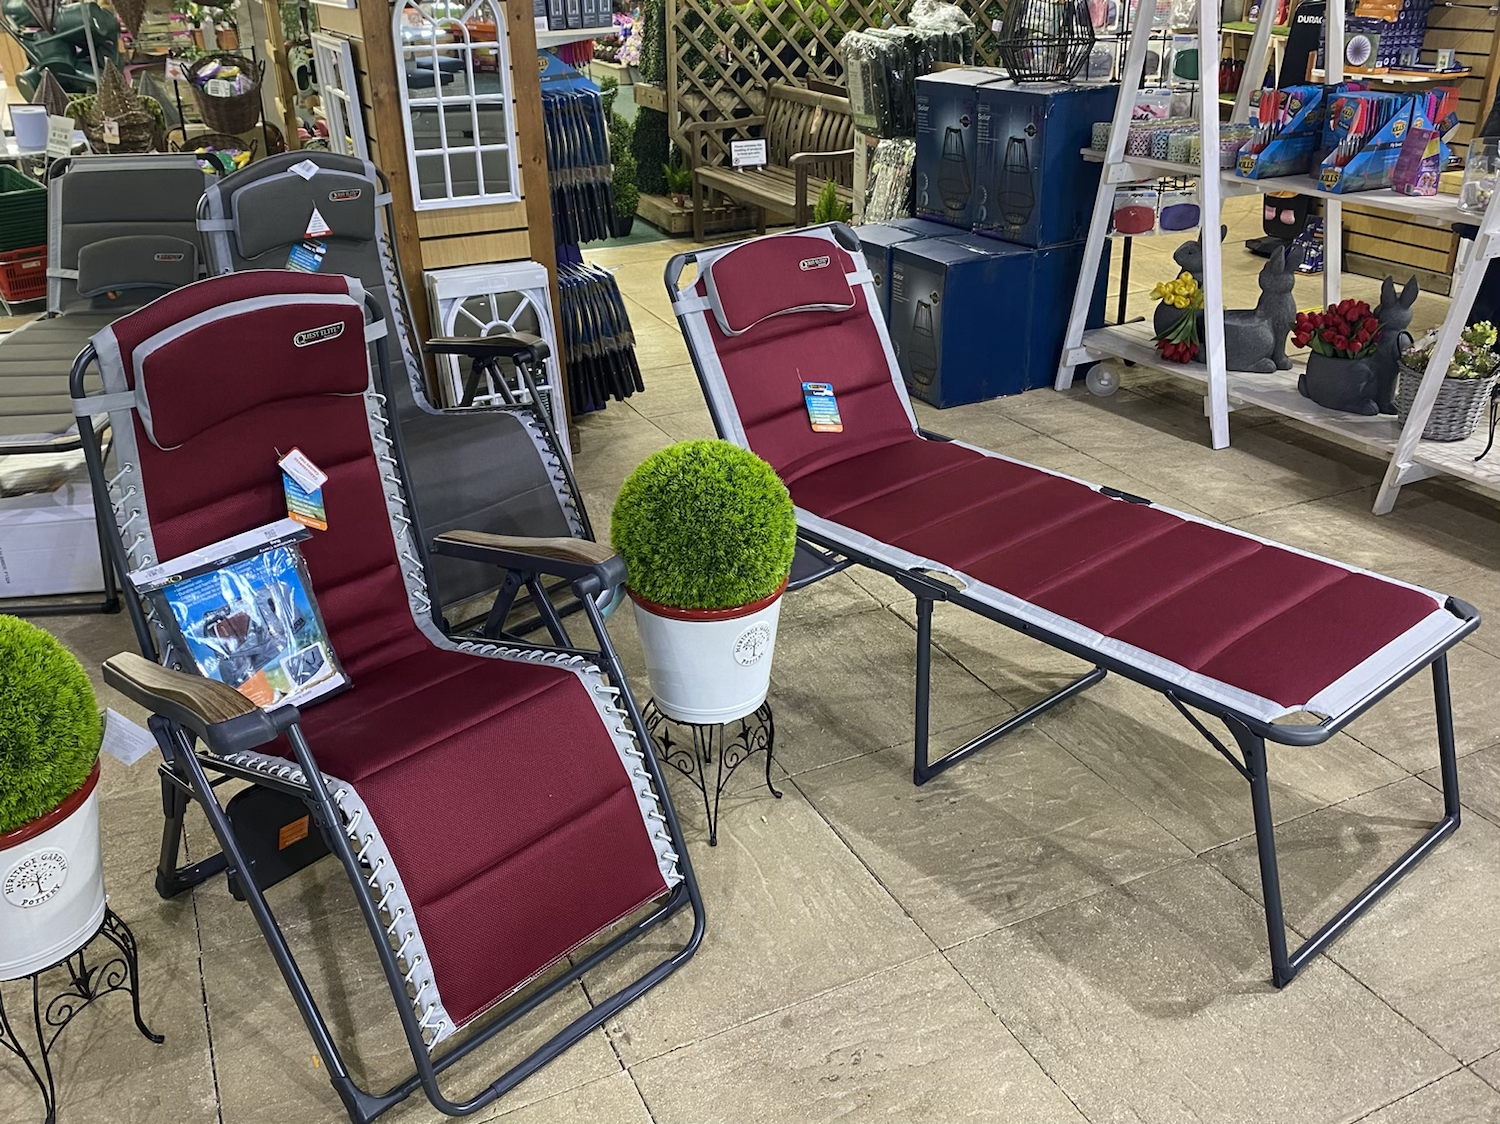 Quest Bordeaux Pro Comfort Gravity Relaxer - £179.99 & Lounge Bed - £169.99